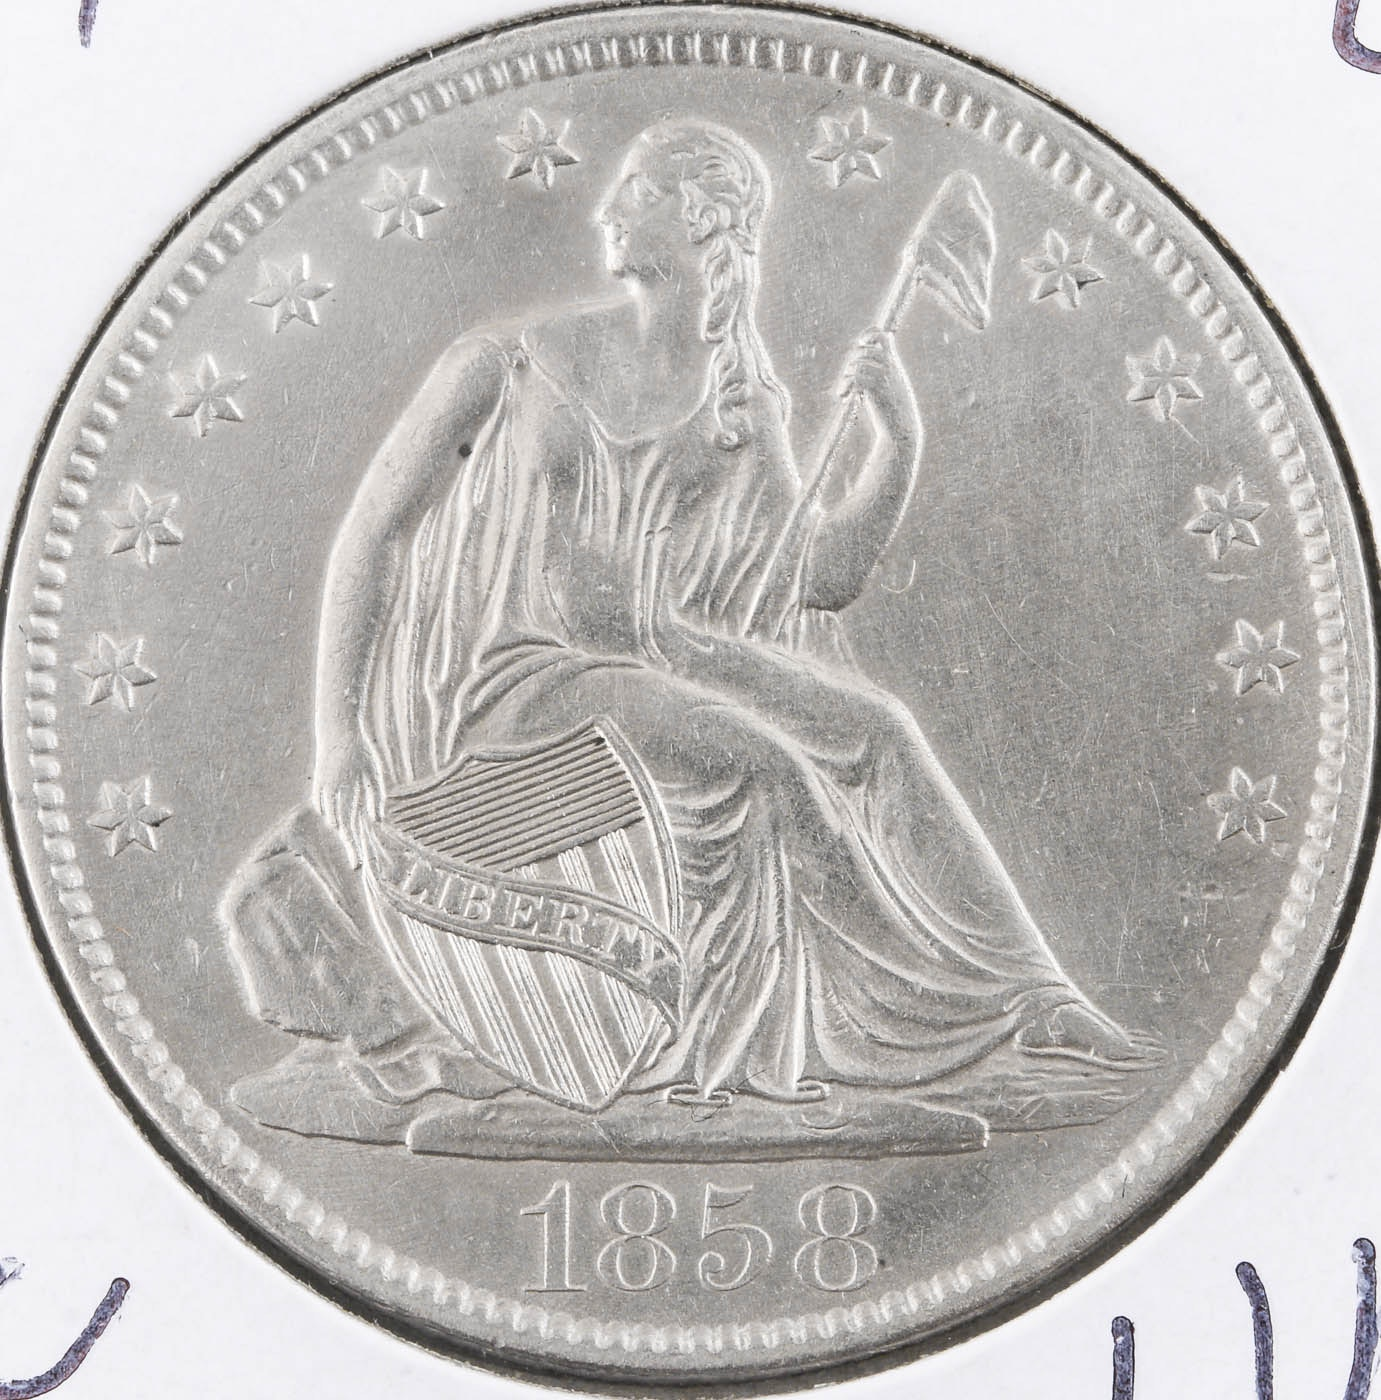 1858-O Seated Liberty Silver Half Dollar